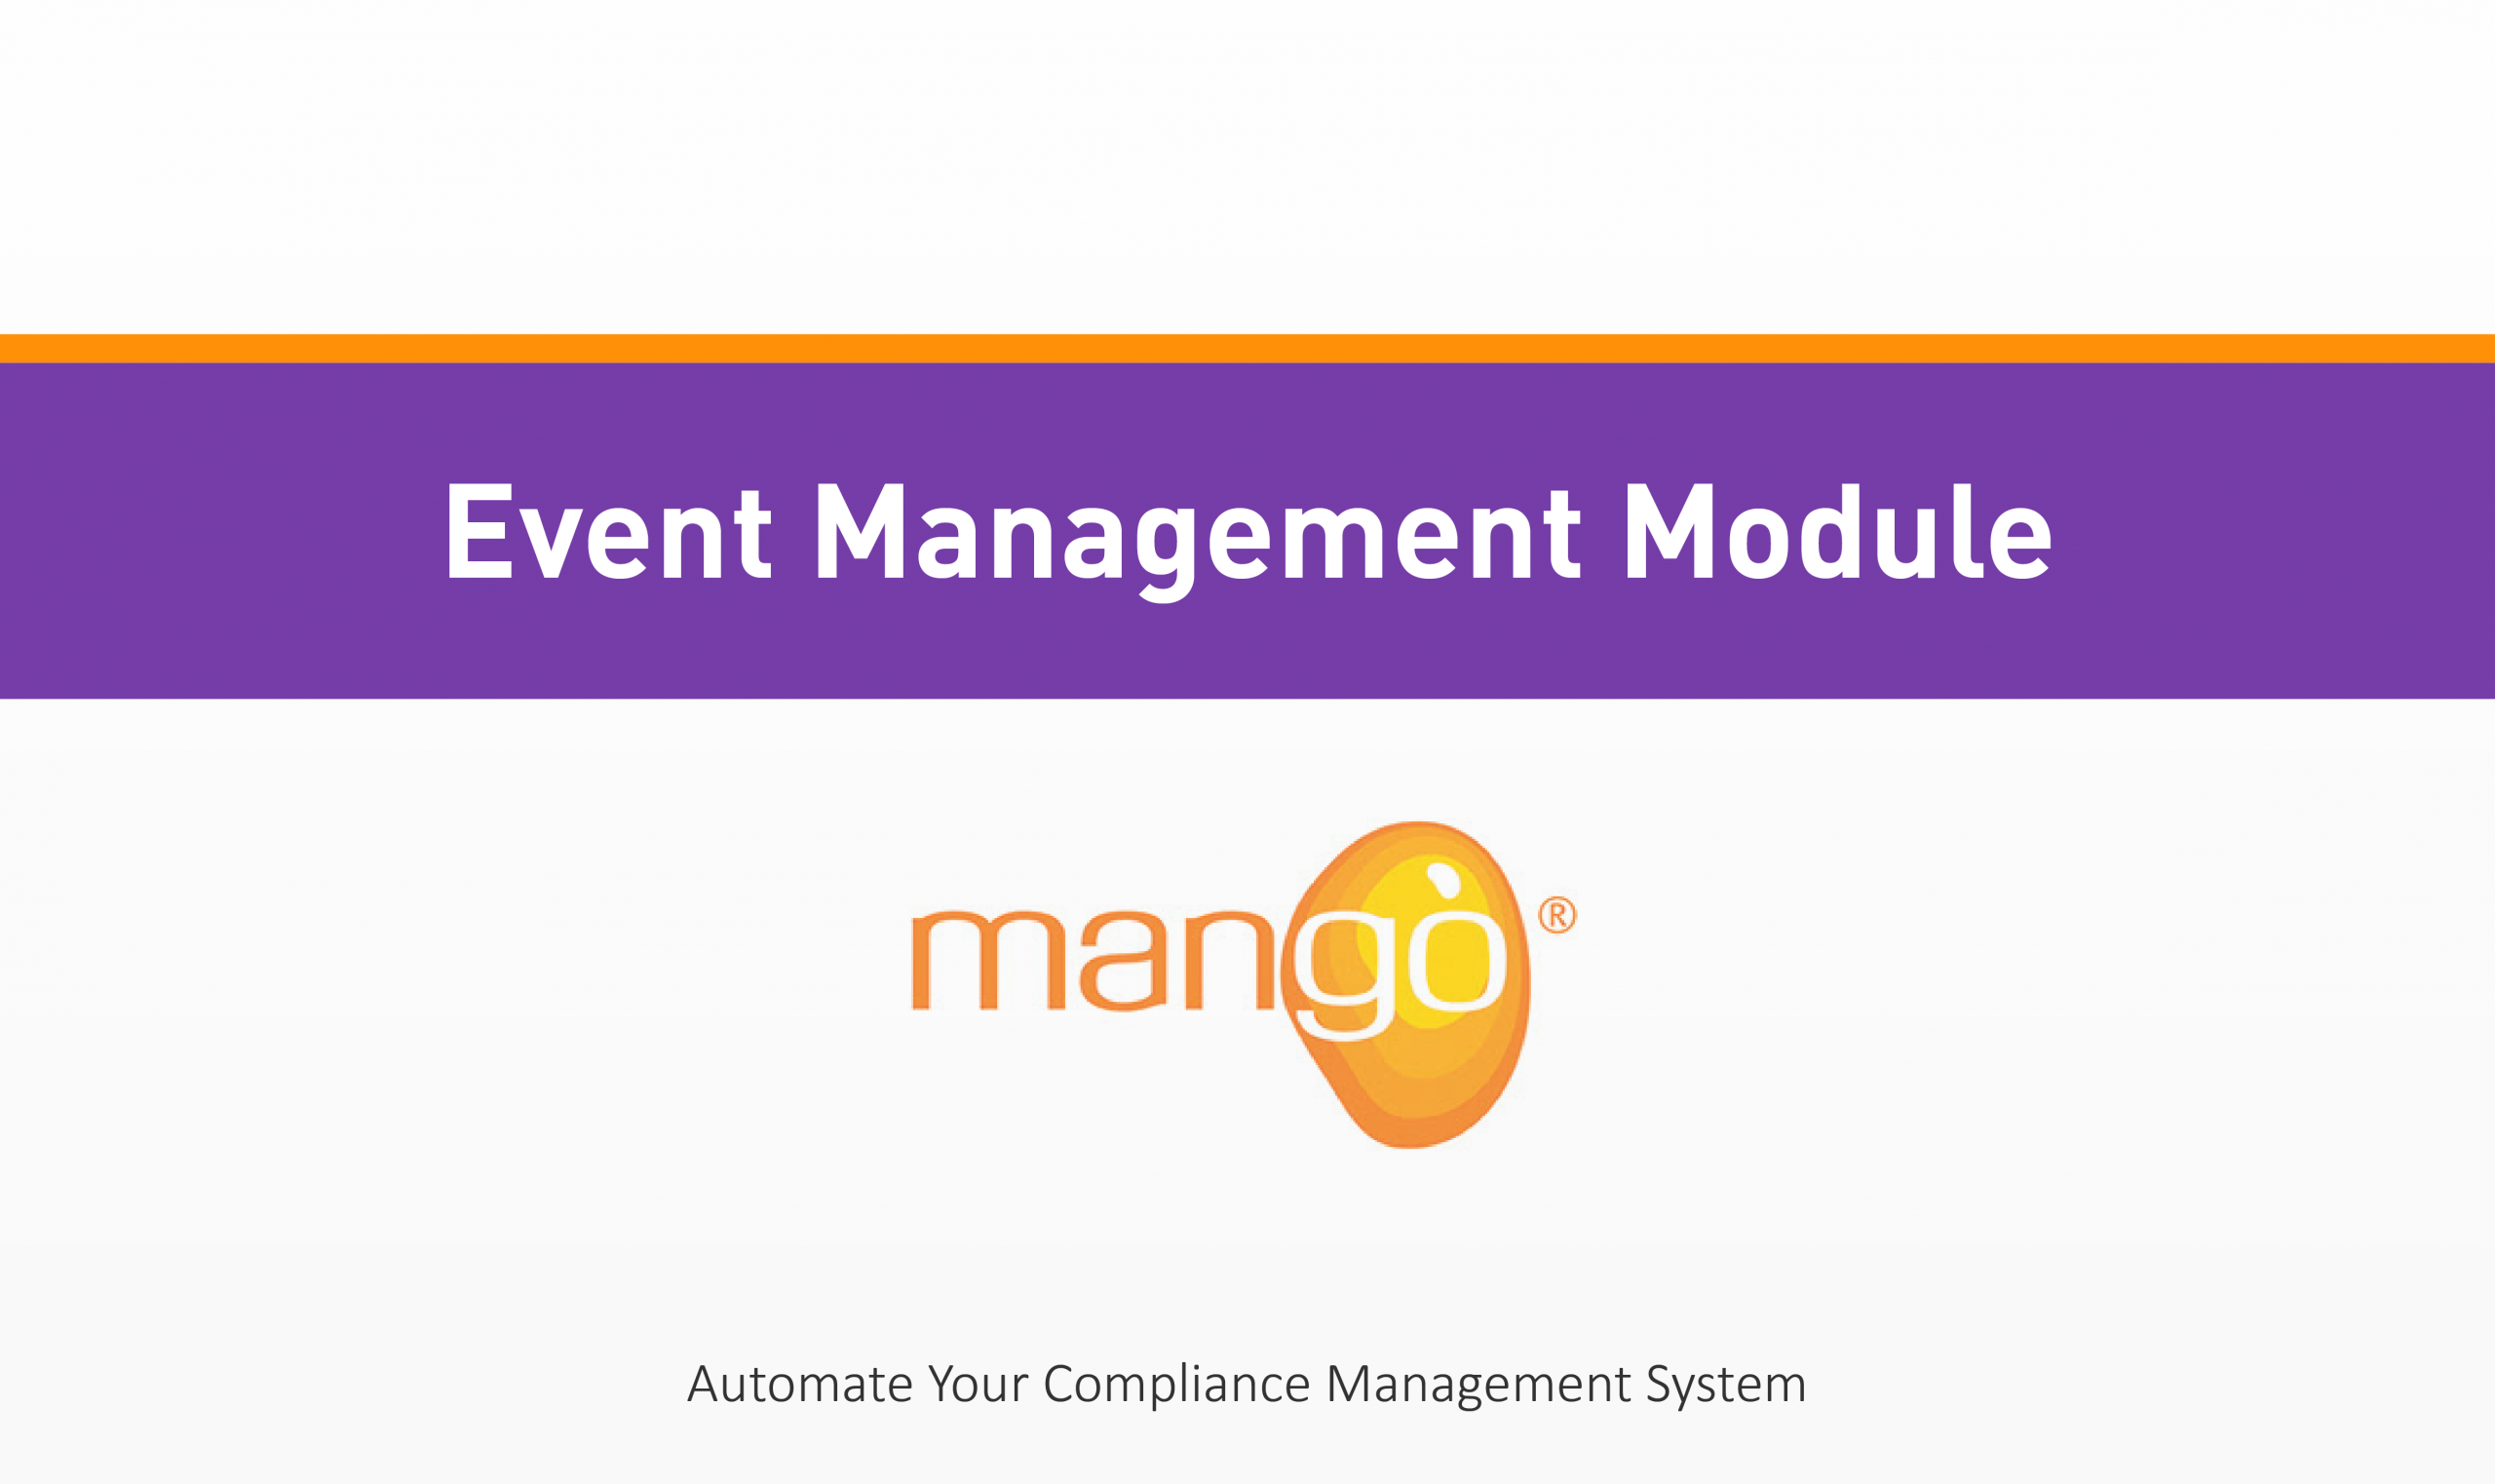 Event Management QHSE Training Quality Health Safety Environment Management Compliance Services Australia QHSE Consulting And Auditing Mango Compliance Software Solutions